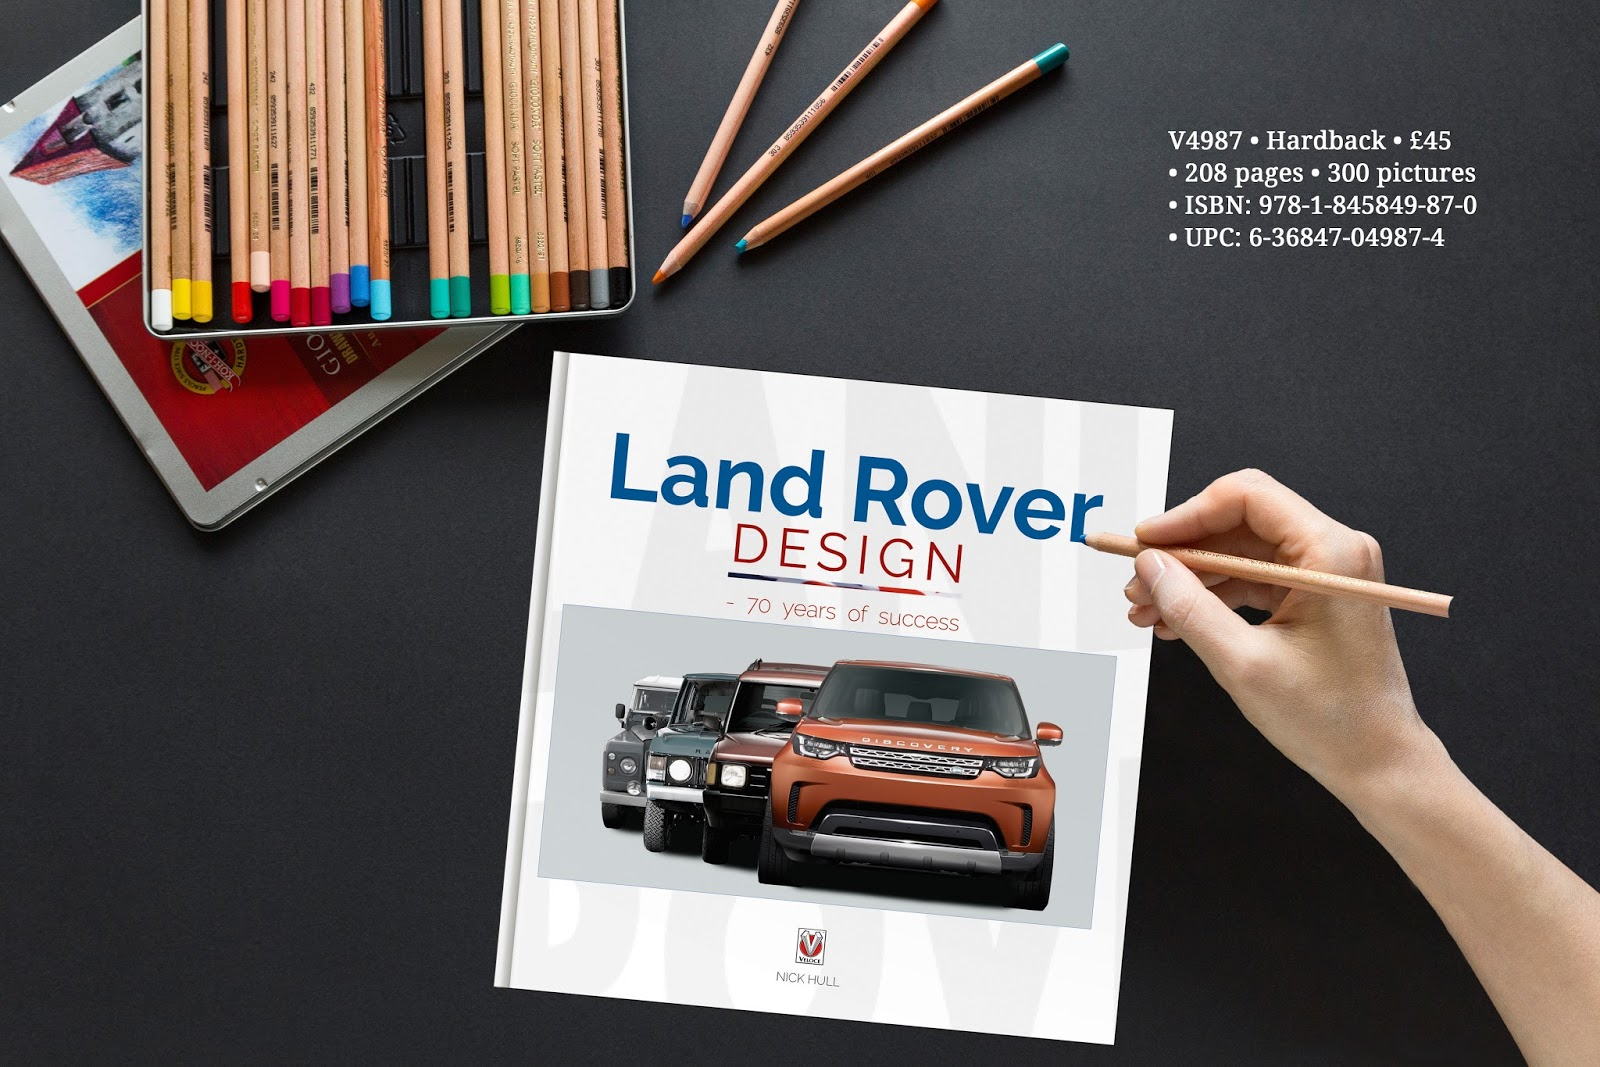 W211electric manual ebook pro bash programming array download array land rover discovery 2 workshop manual seats ebook rh land rover discovery 2 workshop fandeluxe Choice Image